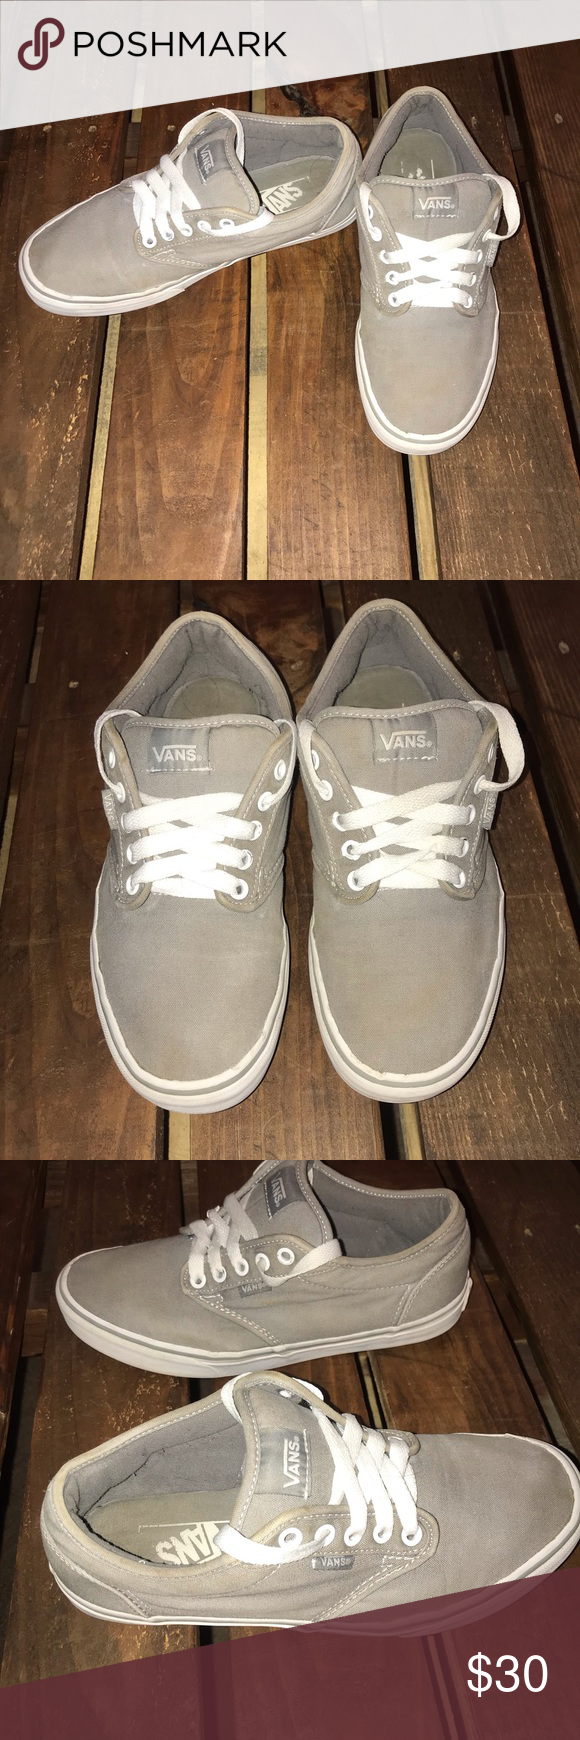 Vans with puffy tongue | Vans, Womens shoes sneakers, Gray vans